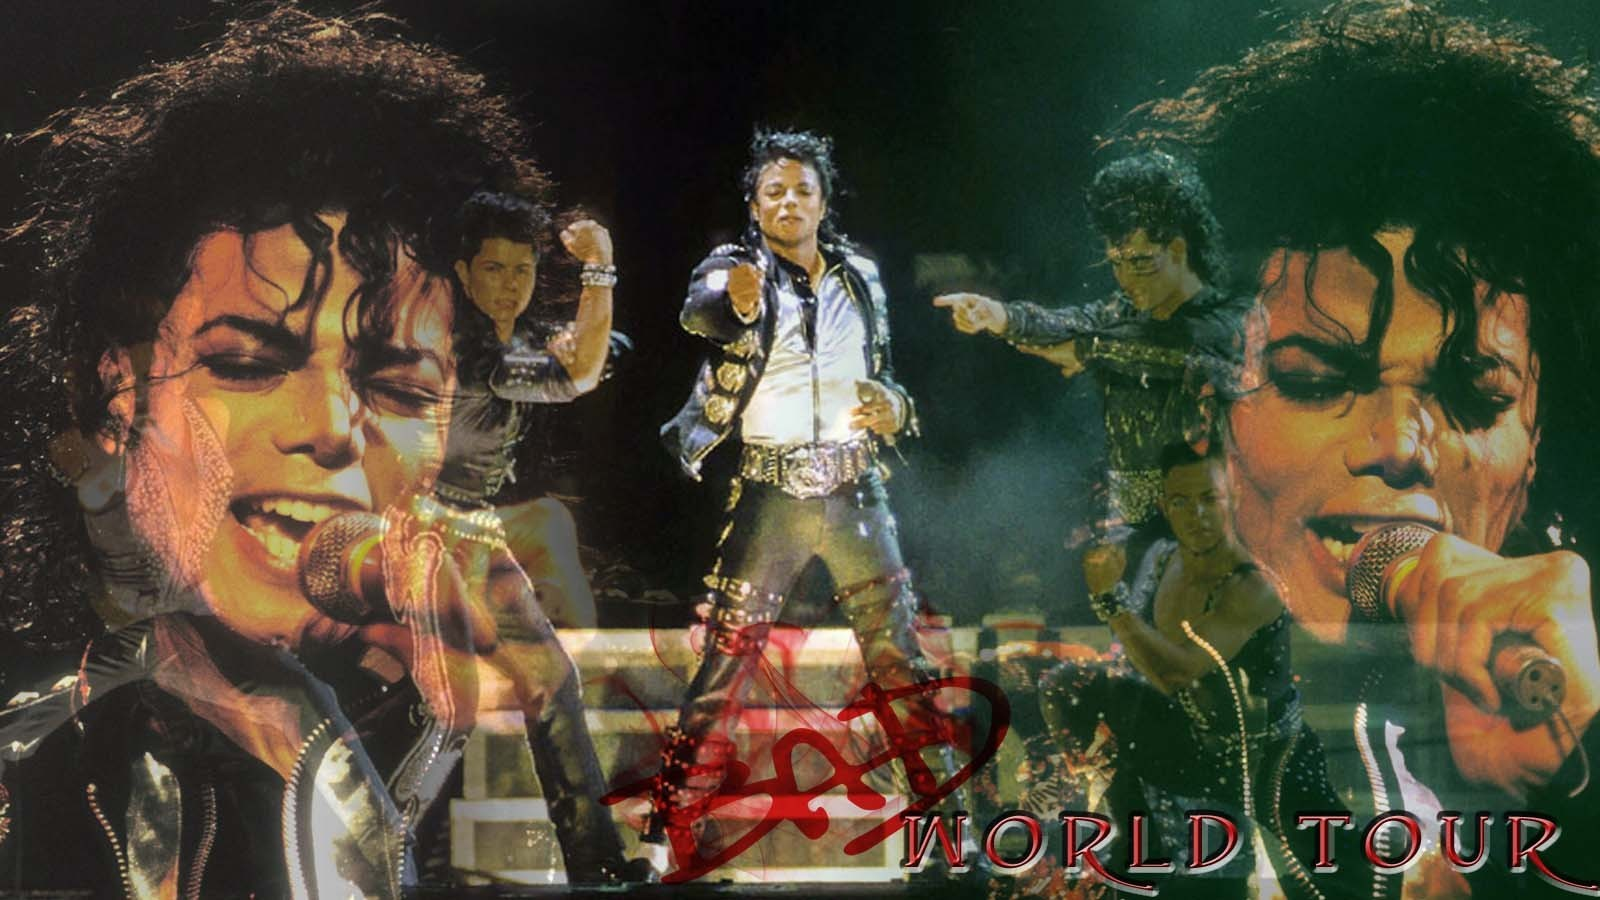 Bad Worl Tour - michael-jackson wallpaper